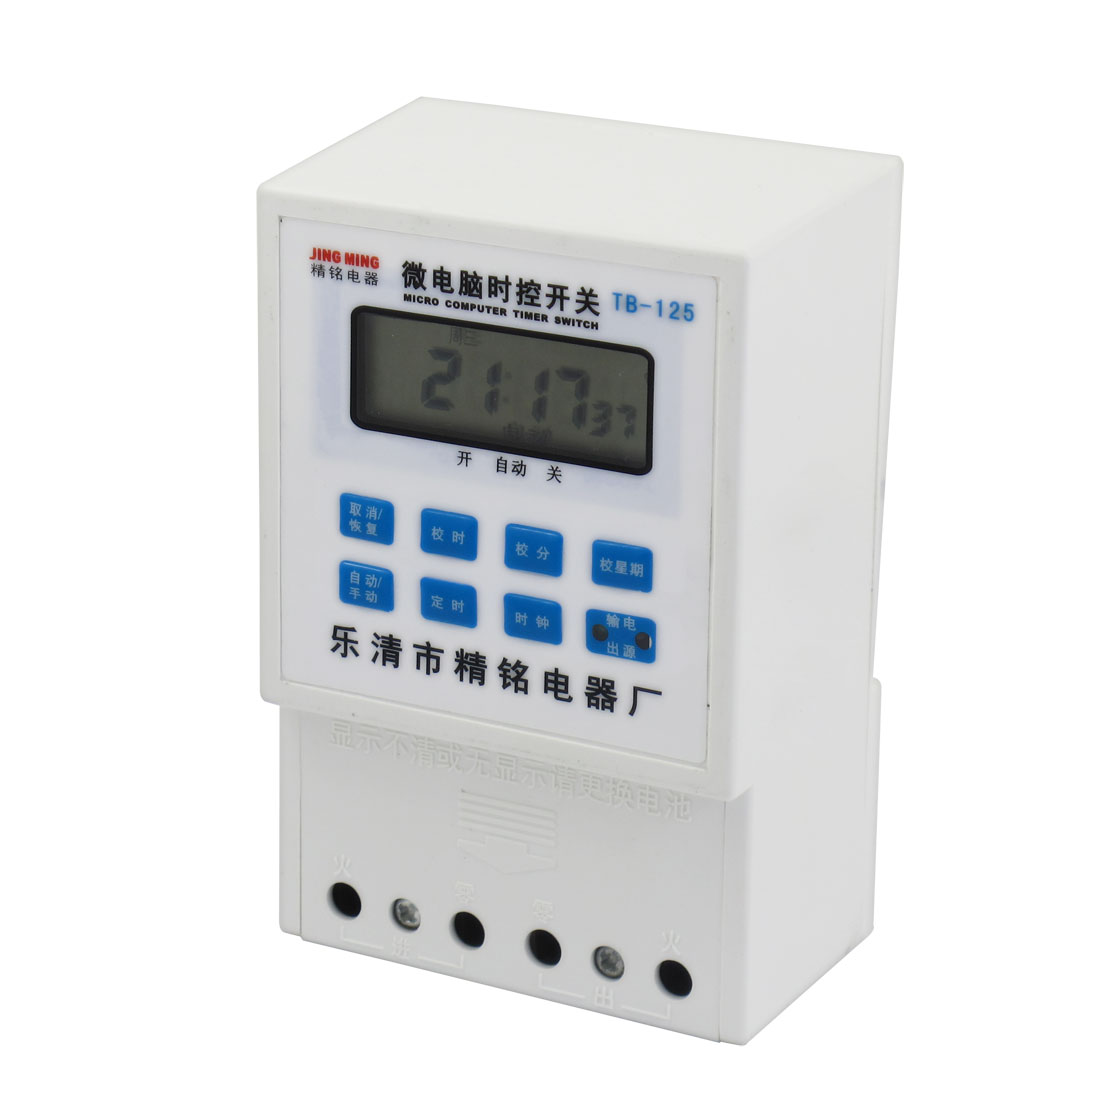 TB-125 220V 50Hz LCD Digital Display Microcomputer Timer Time Control Switch